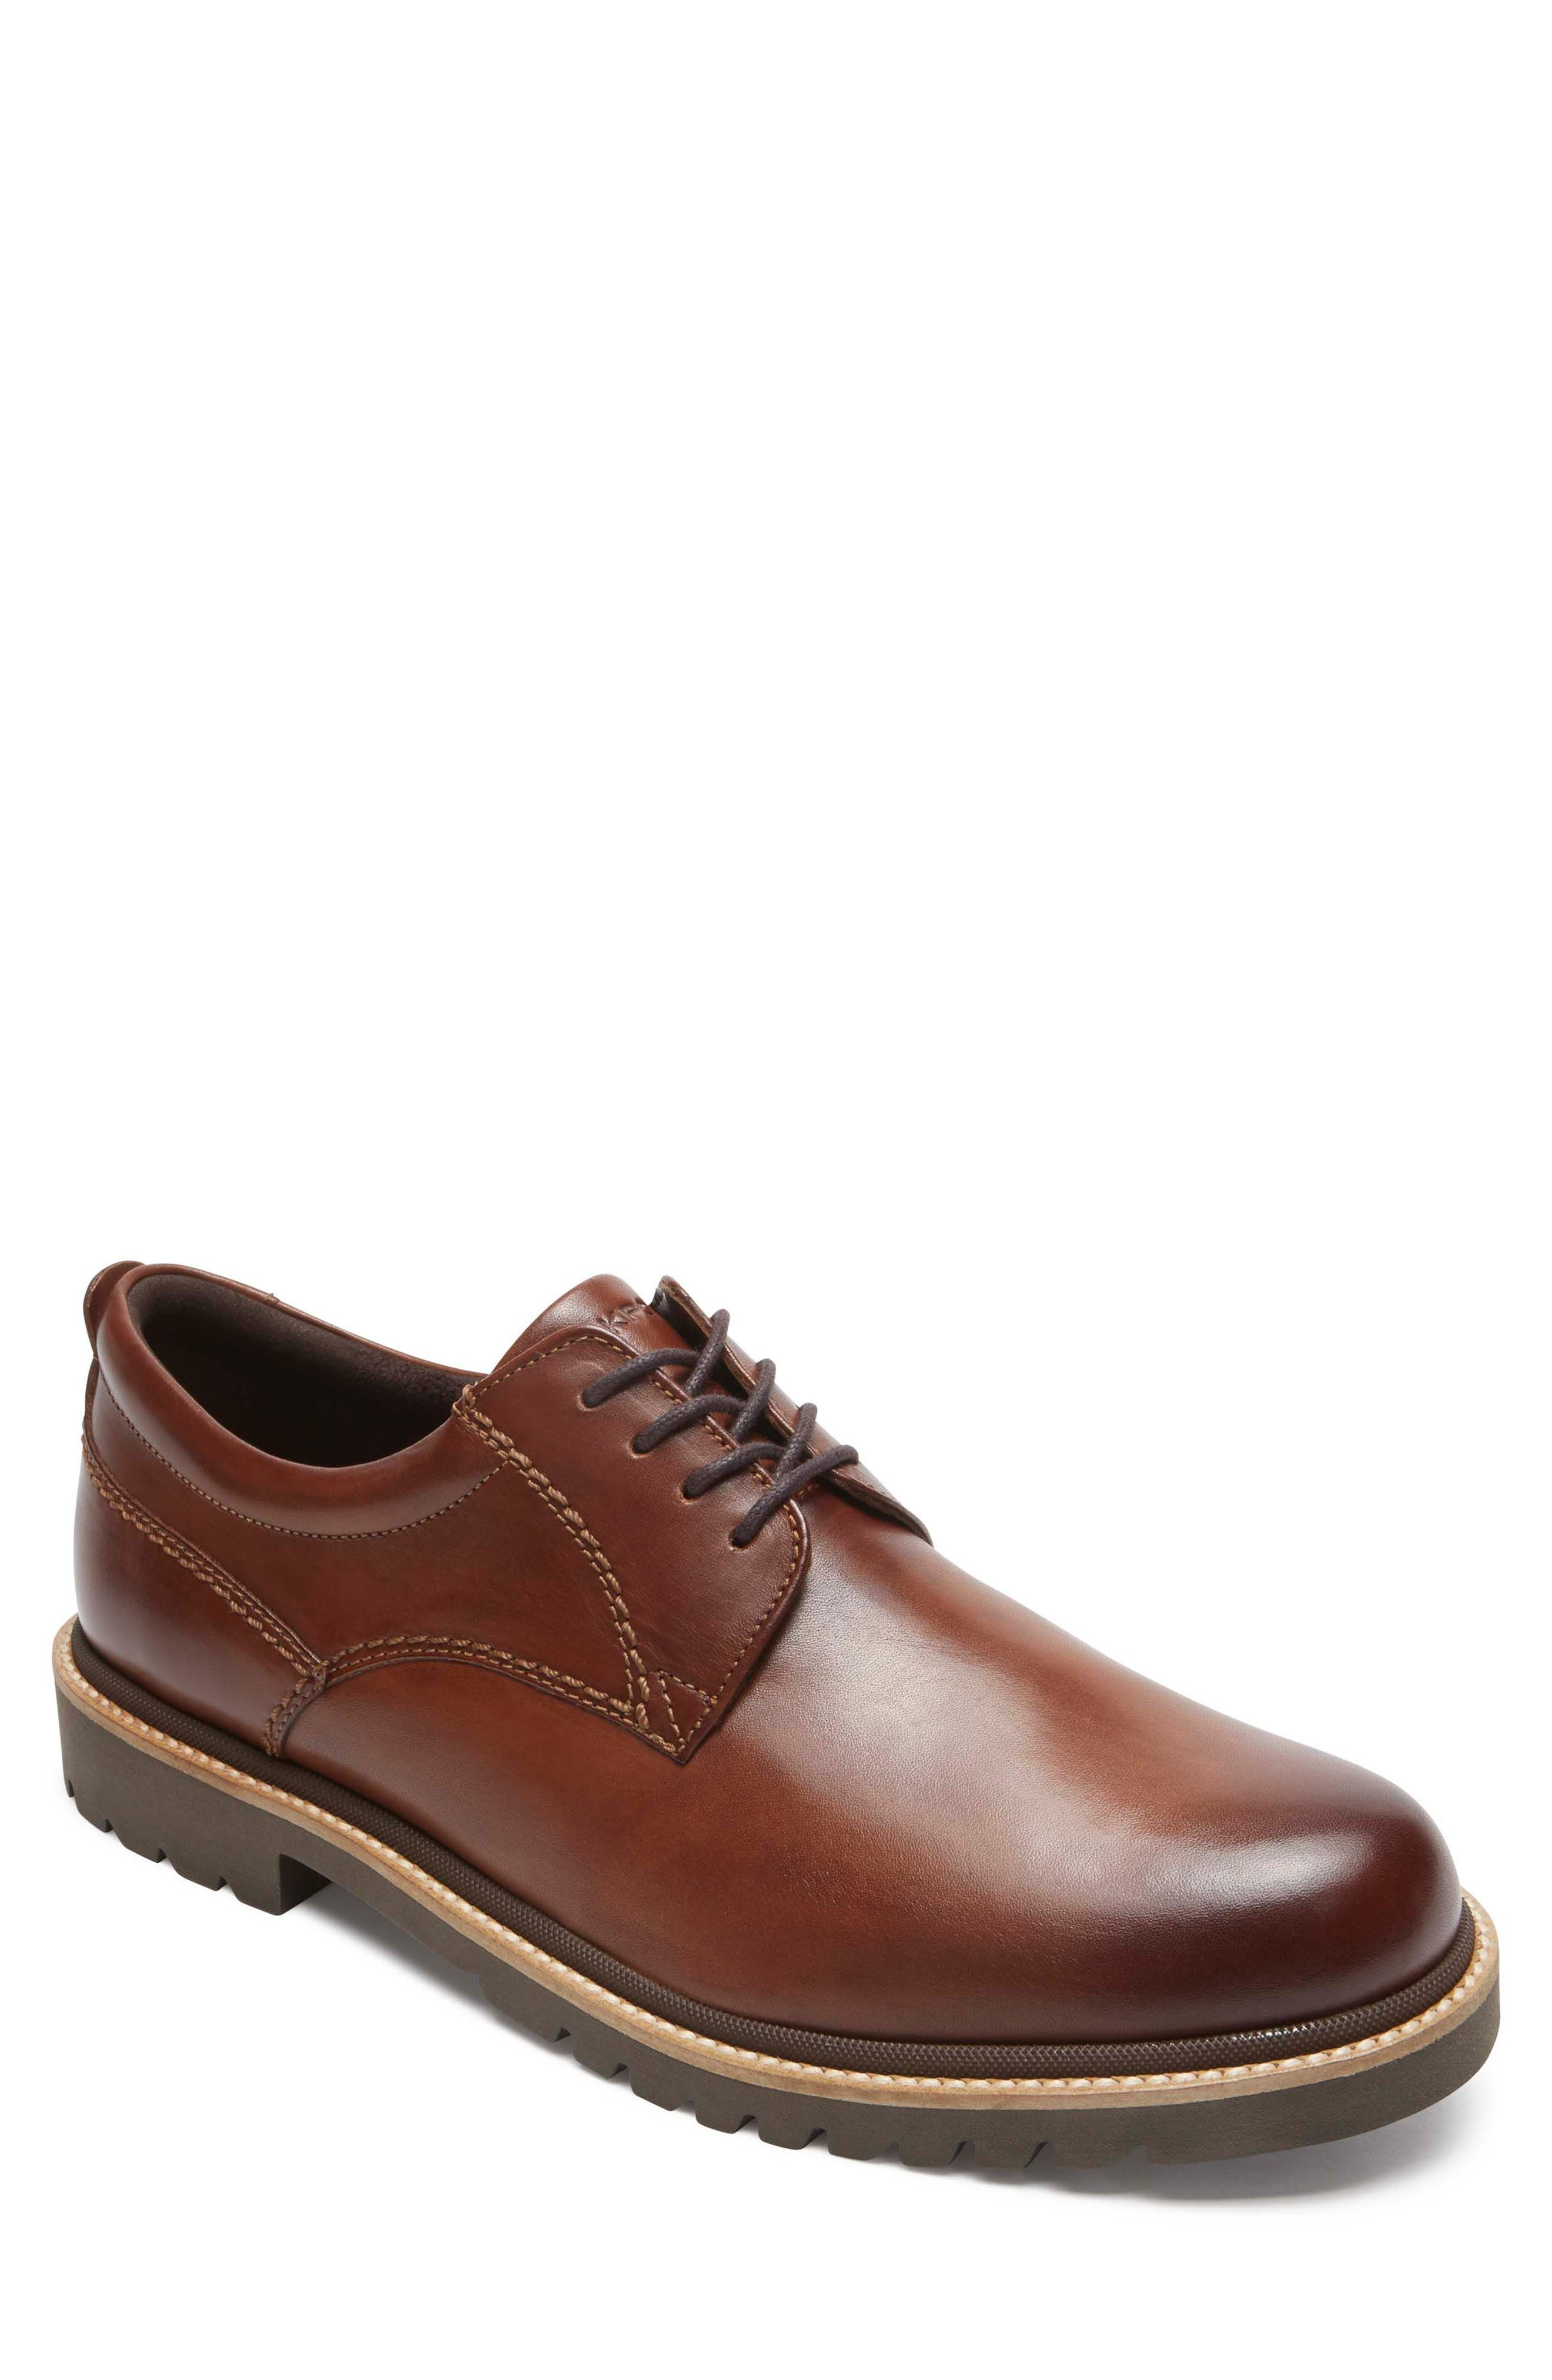 Marshall Buck Shoe,                         Main,                         color, Dark Brown Leather